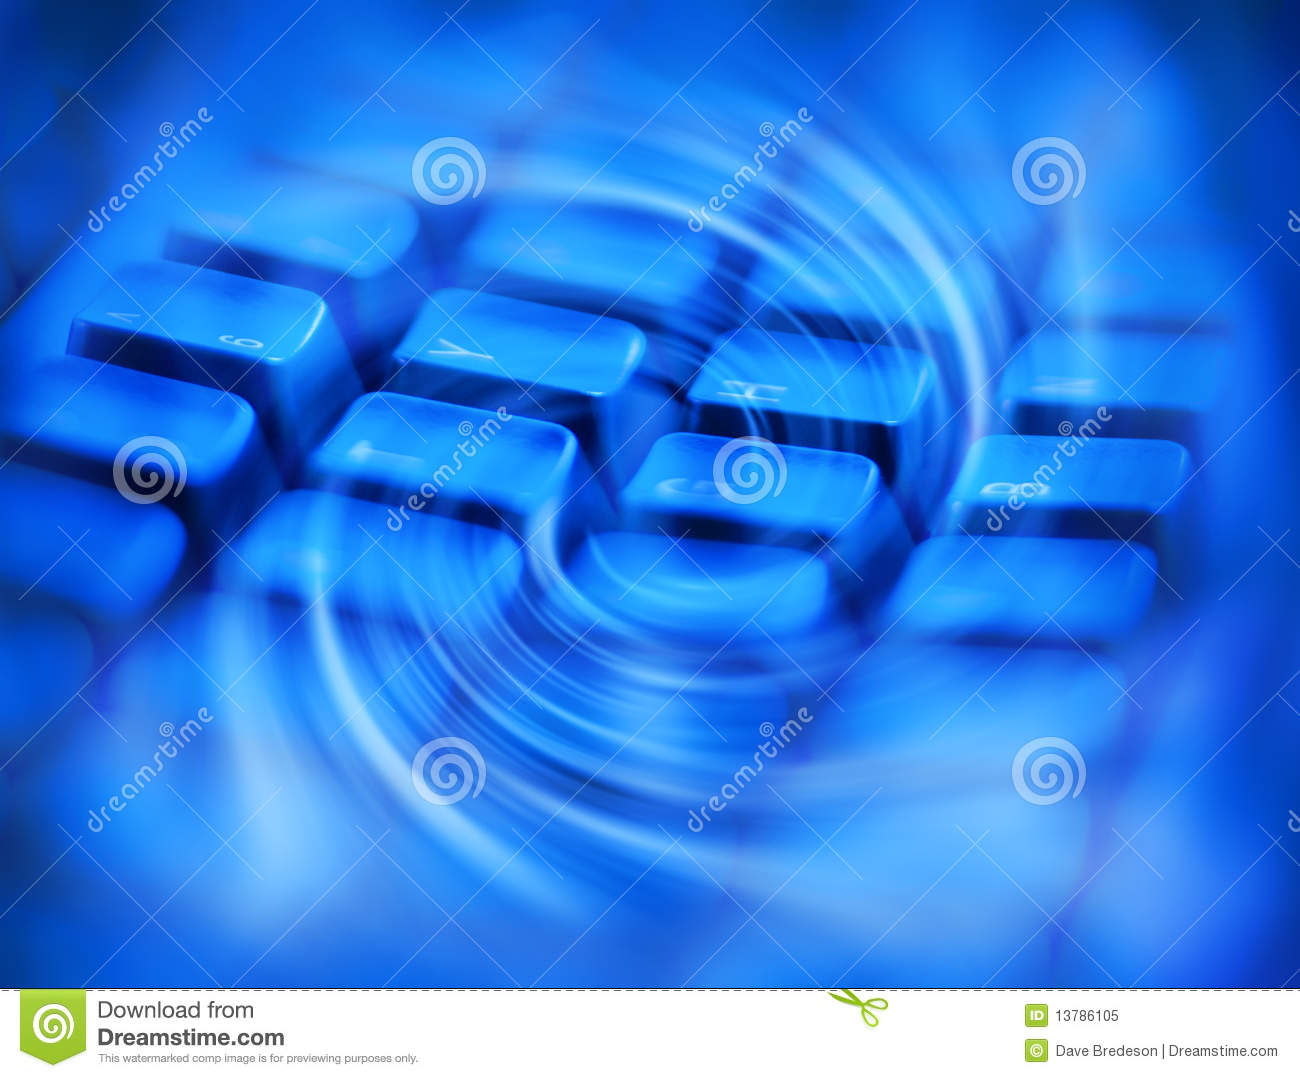 Technology Background Laptop: Abstract Computer Technology Background Royalty Free Stock